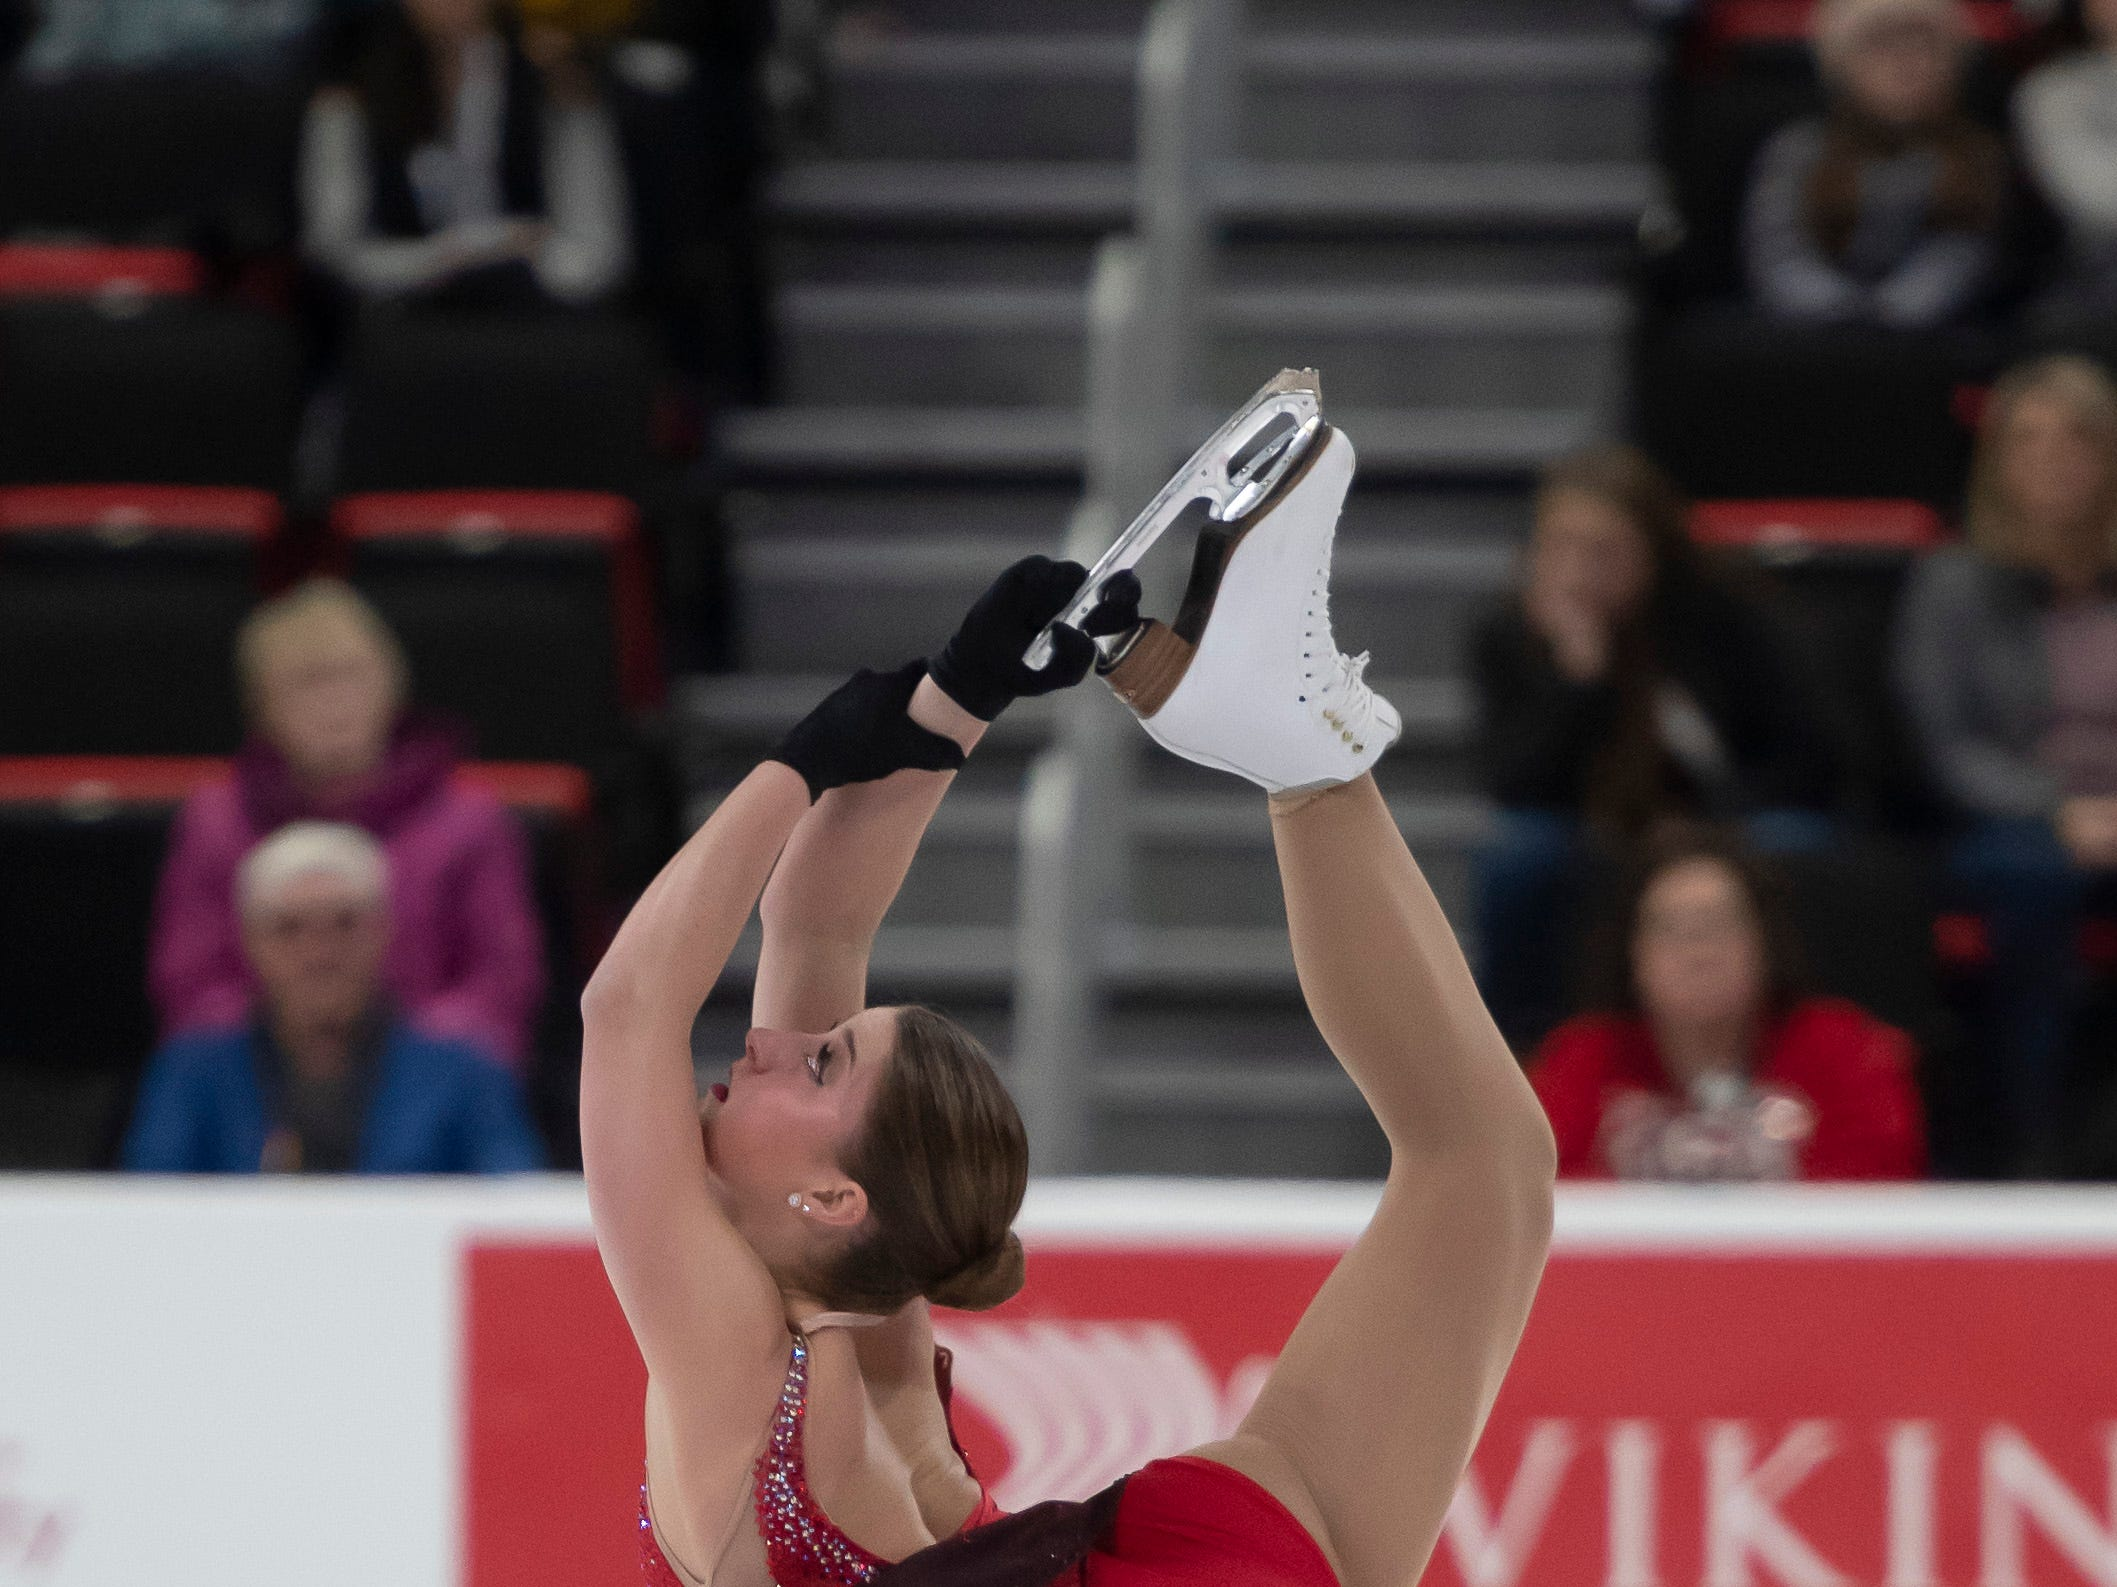 Hannah Miller, who has trained with the Lansing Skating Club, competes in the ladies short program.